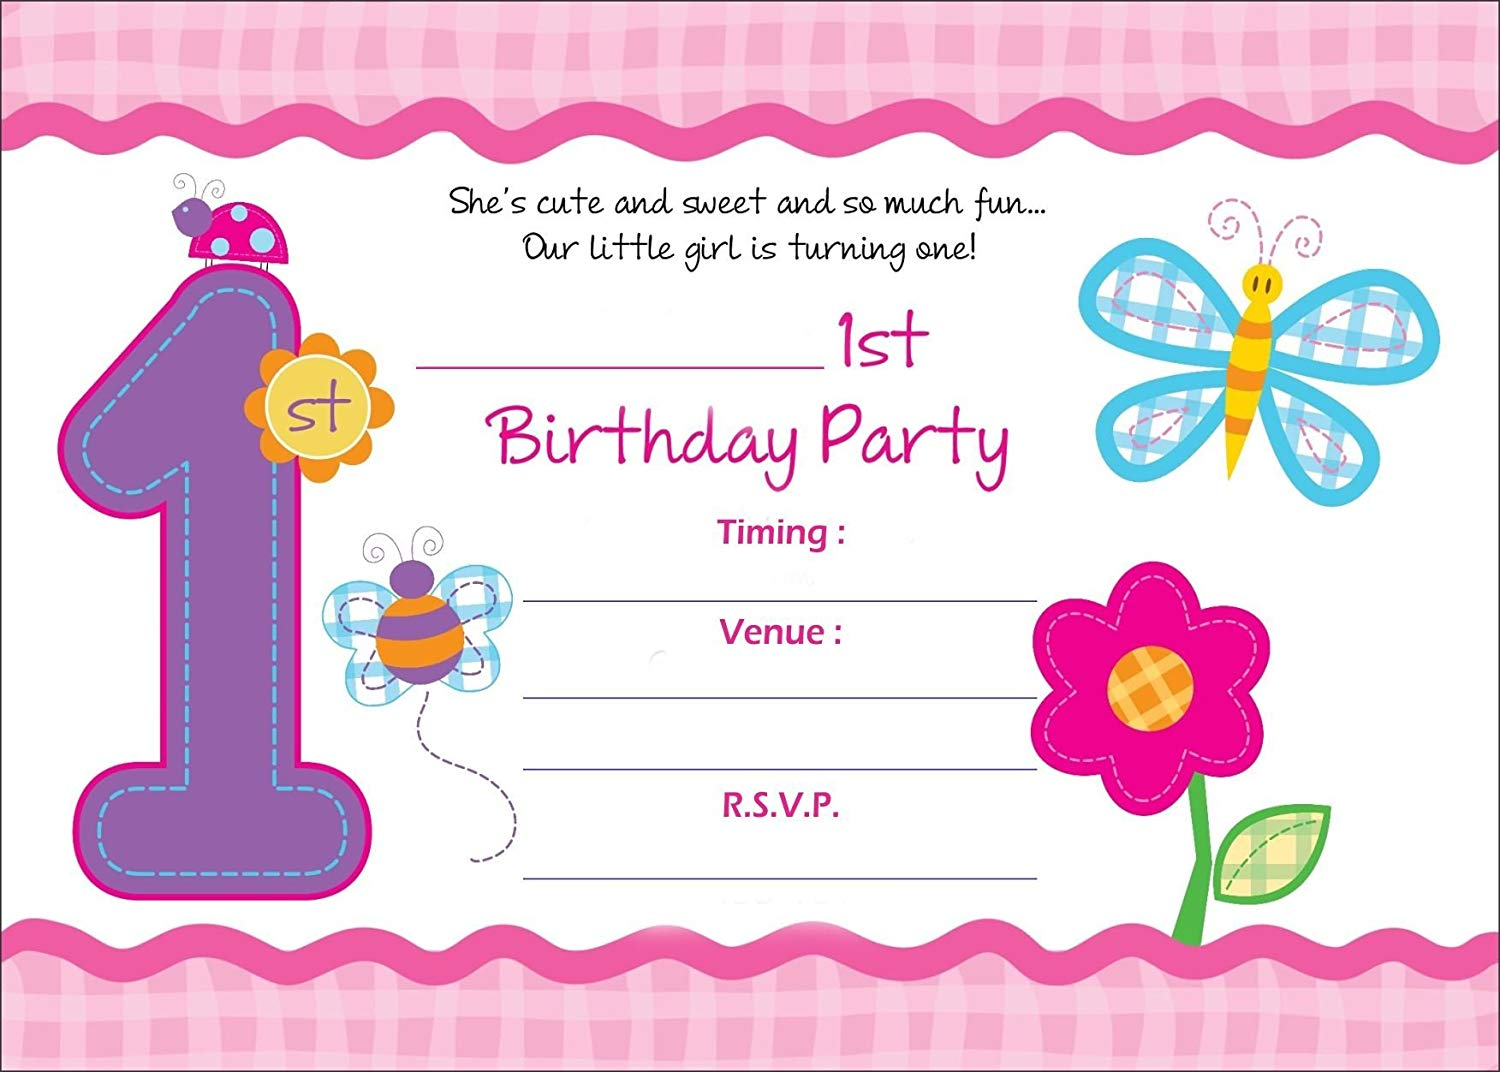 papery pop 1st birthday party